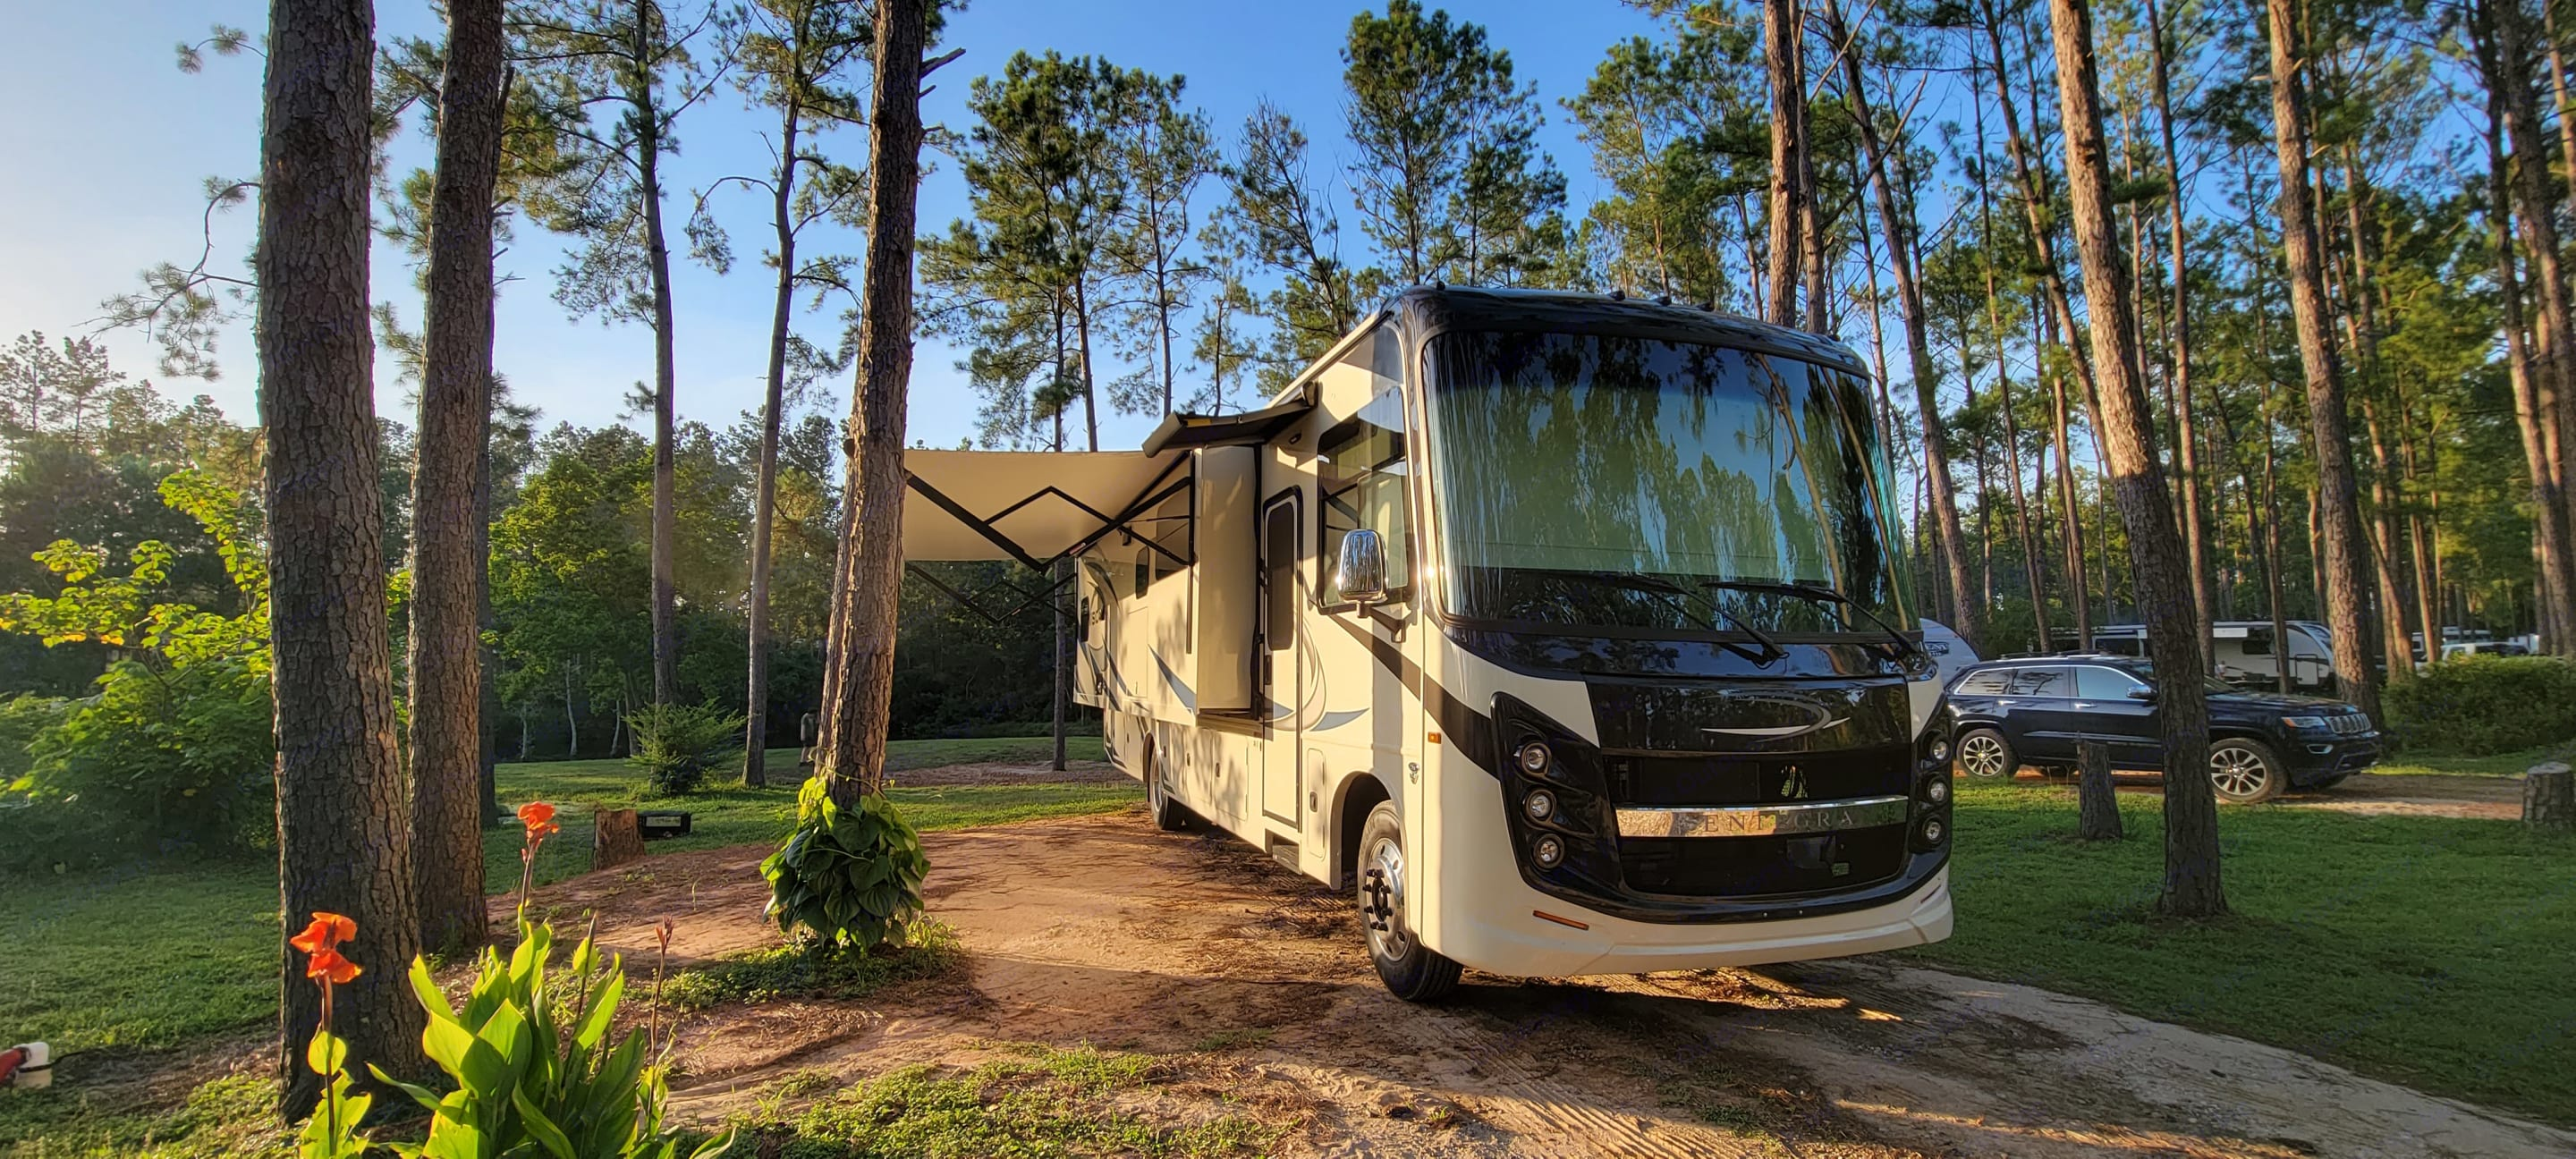 The exterior awnings provide comfort from the elements and come with led lighting for night gatherings!. Entegra Coach Other 2021